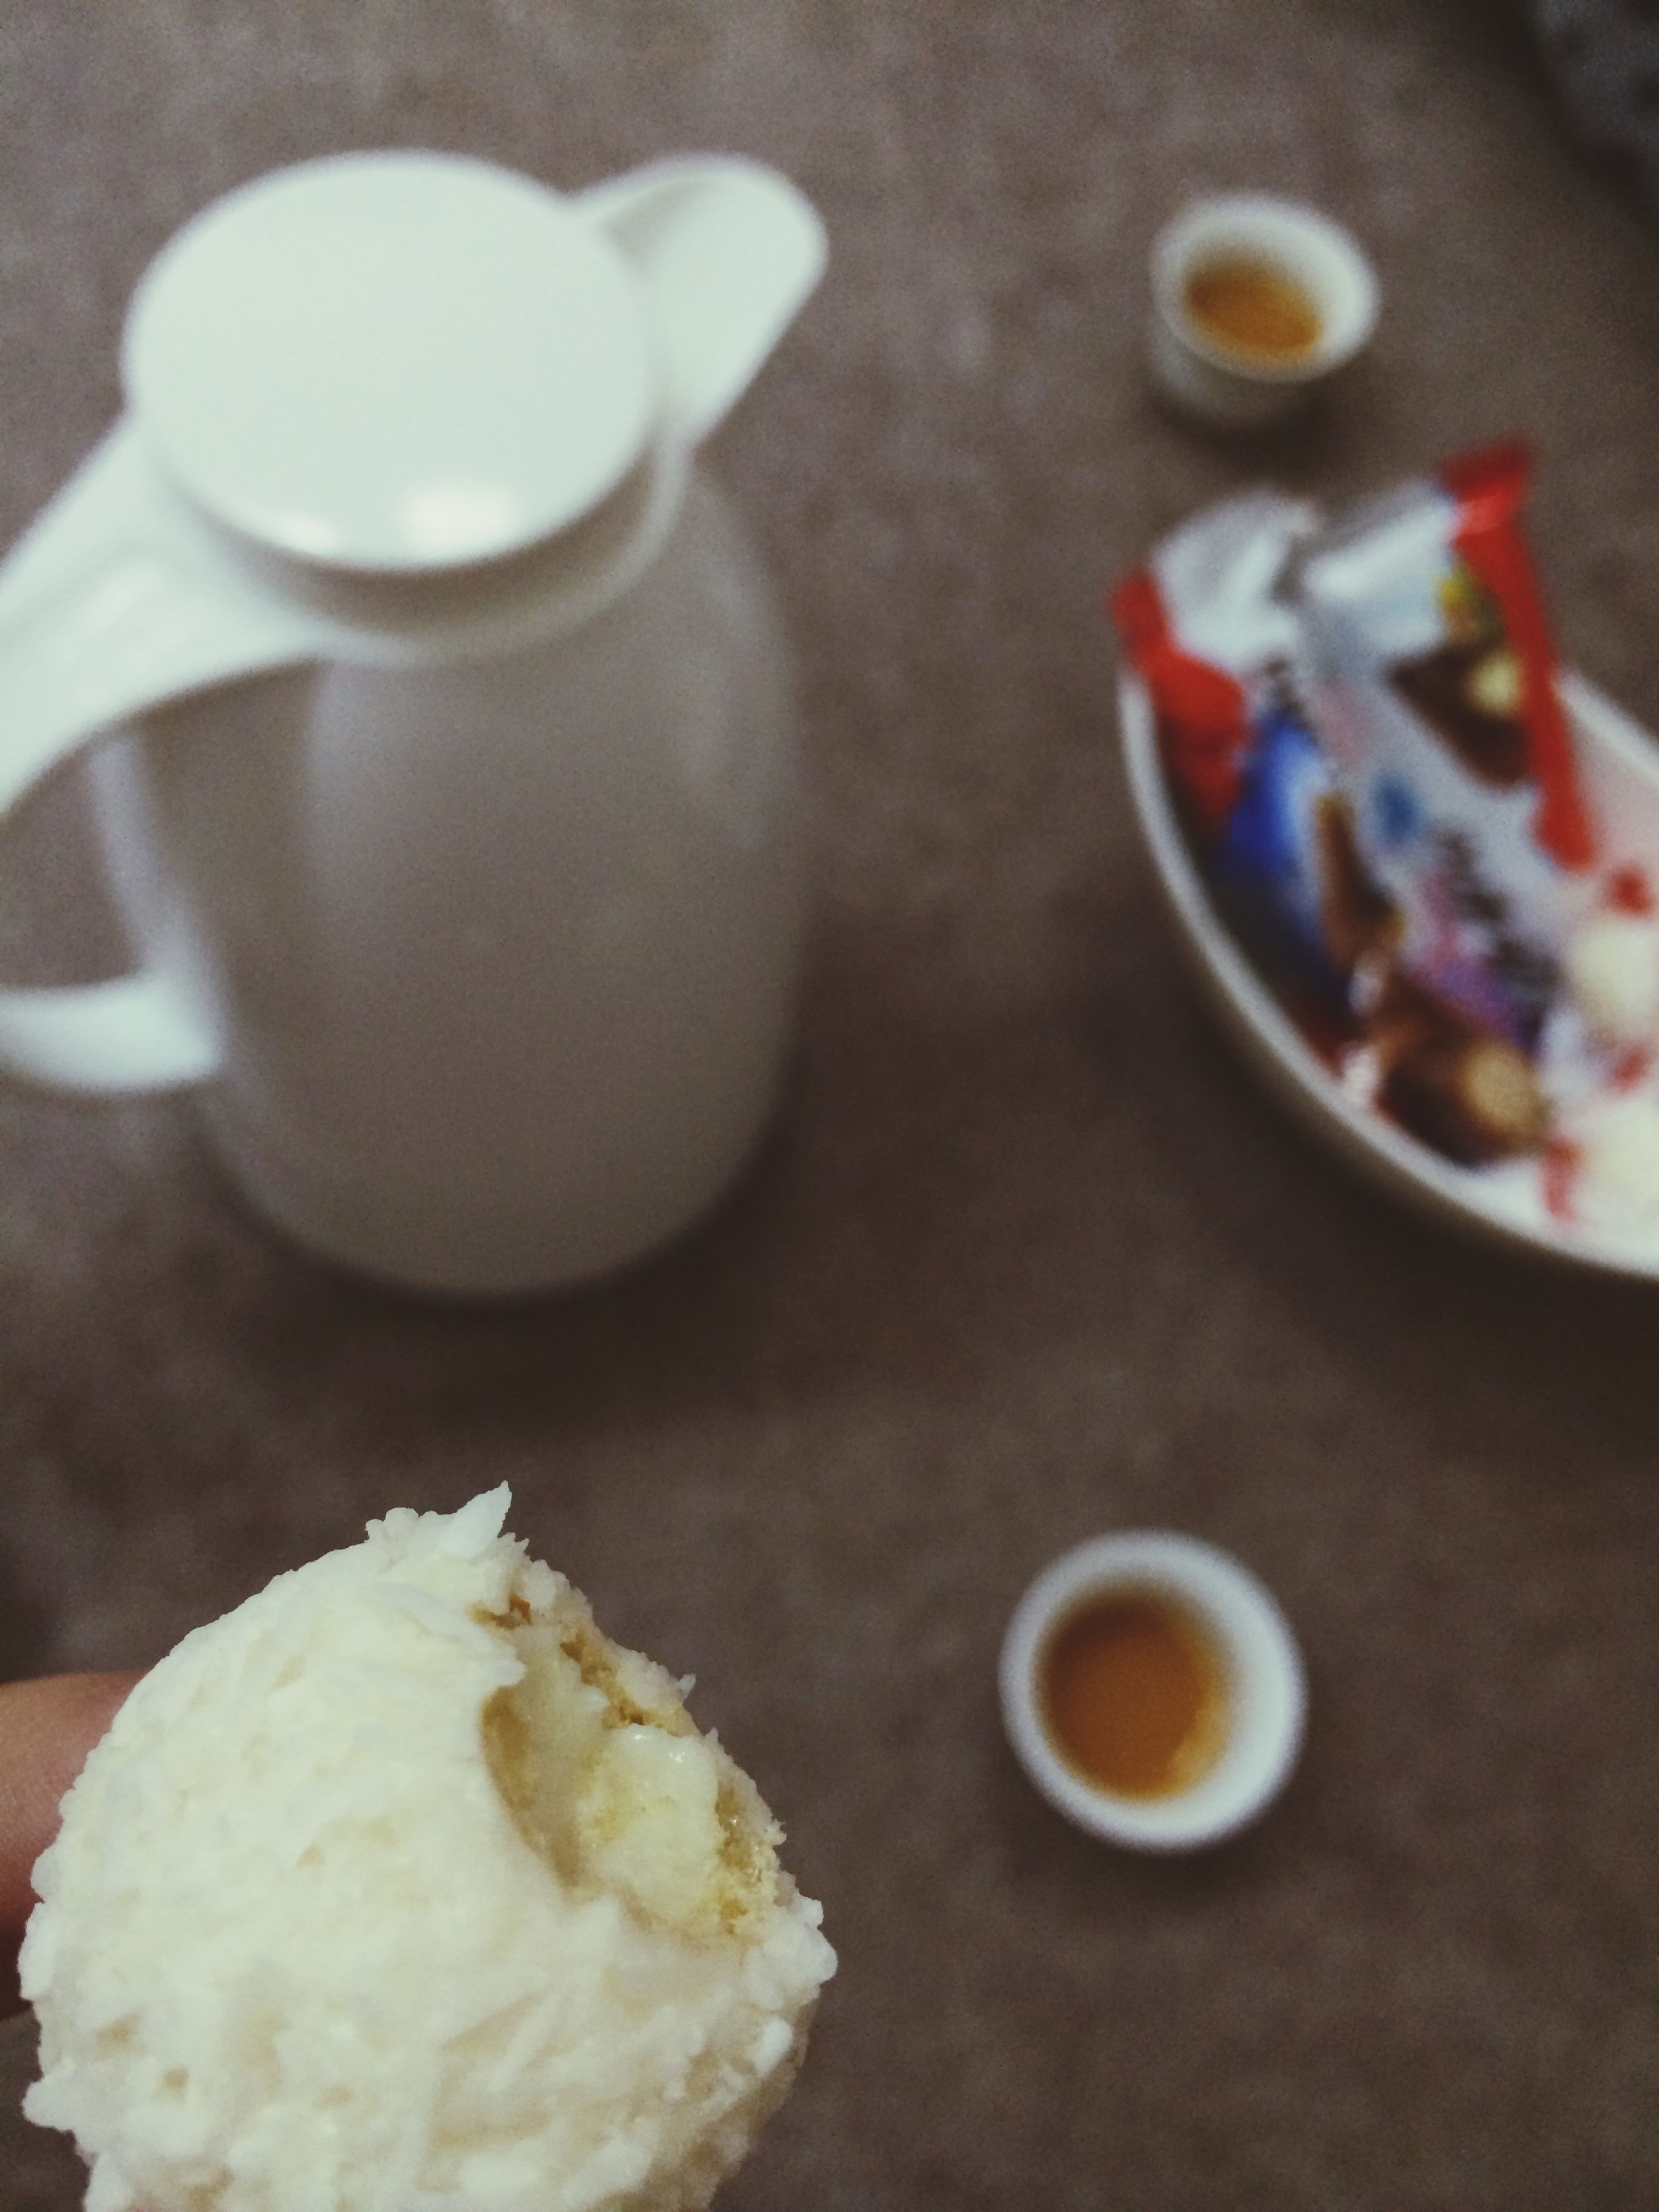 food and drink, indoors, food, freshness, still life, table, sweet food, ready-to-eat, plate, indulgence, dessert, refreshment, coffee cup, drink, breakfast, close-up, healthy eating, high angle view, cake